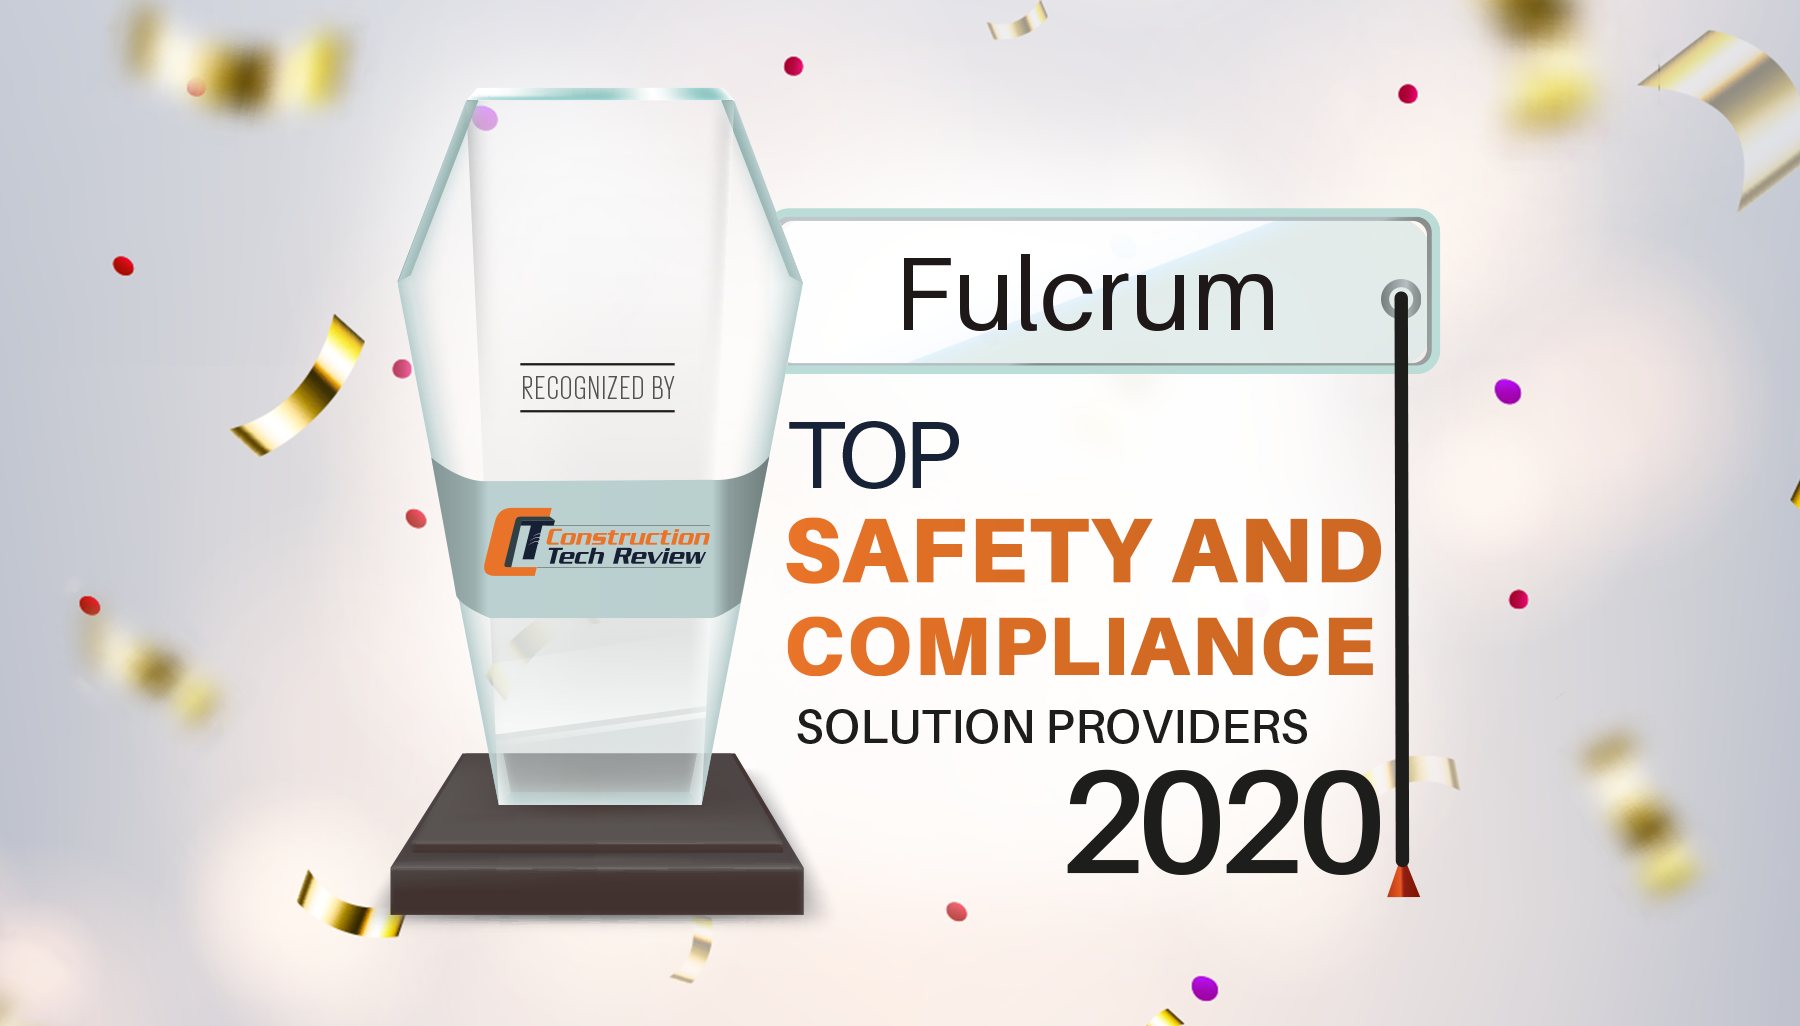 Construction Tech Review Names Fulcrum a Top Provider of Safety and Compliance Solutions